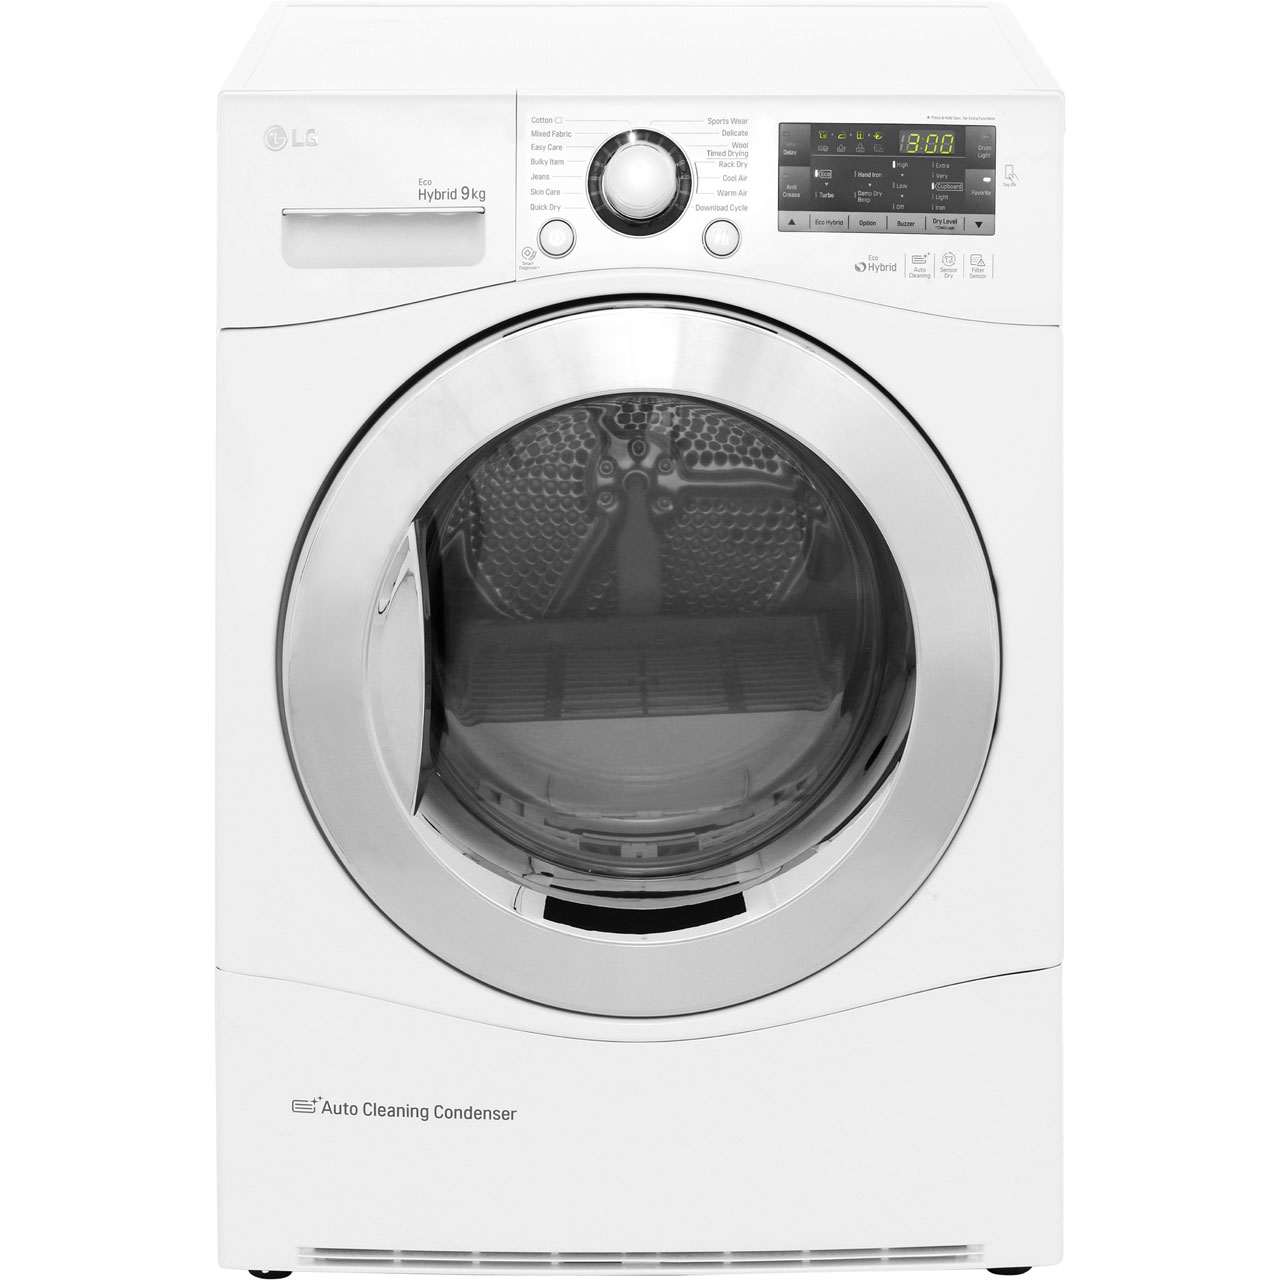 buy cheap lg condenser tumble dryer compare tumble. Black Bedroom Furniture Sets. Home Design Ideas